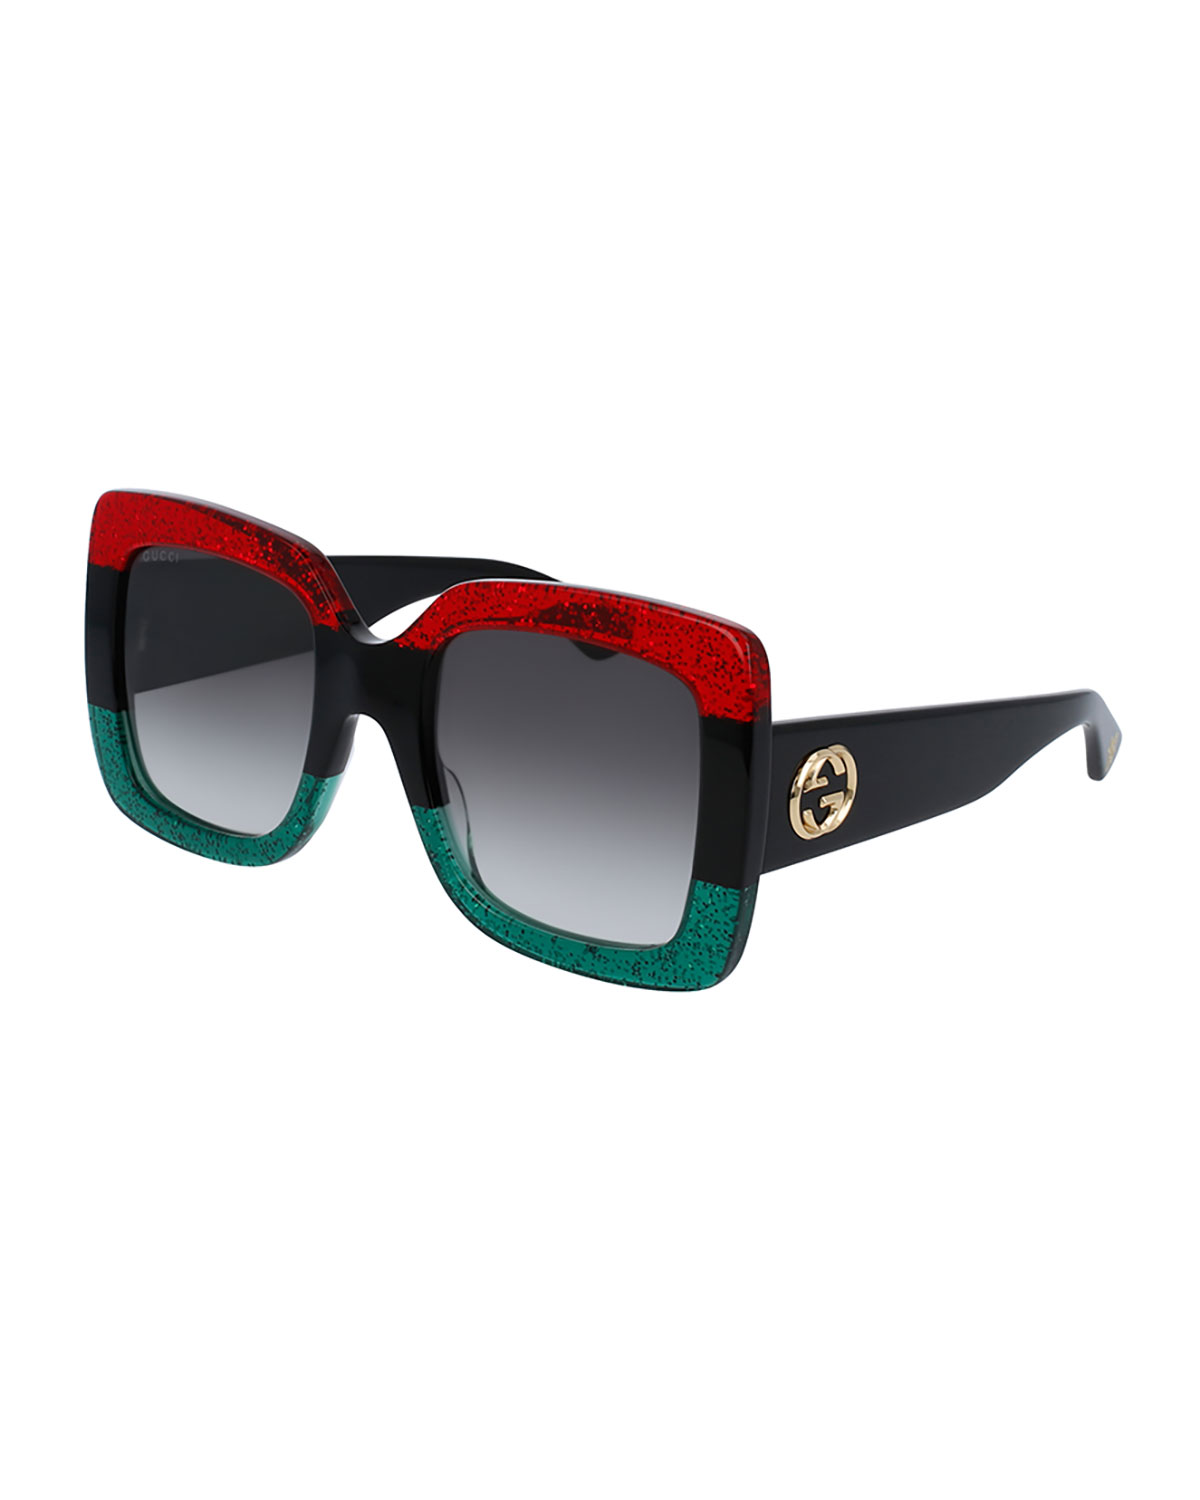 d0669863330 Gucci Glittered Gradient Oversized Square Sunglasses